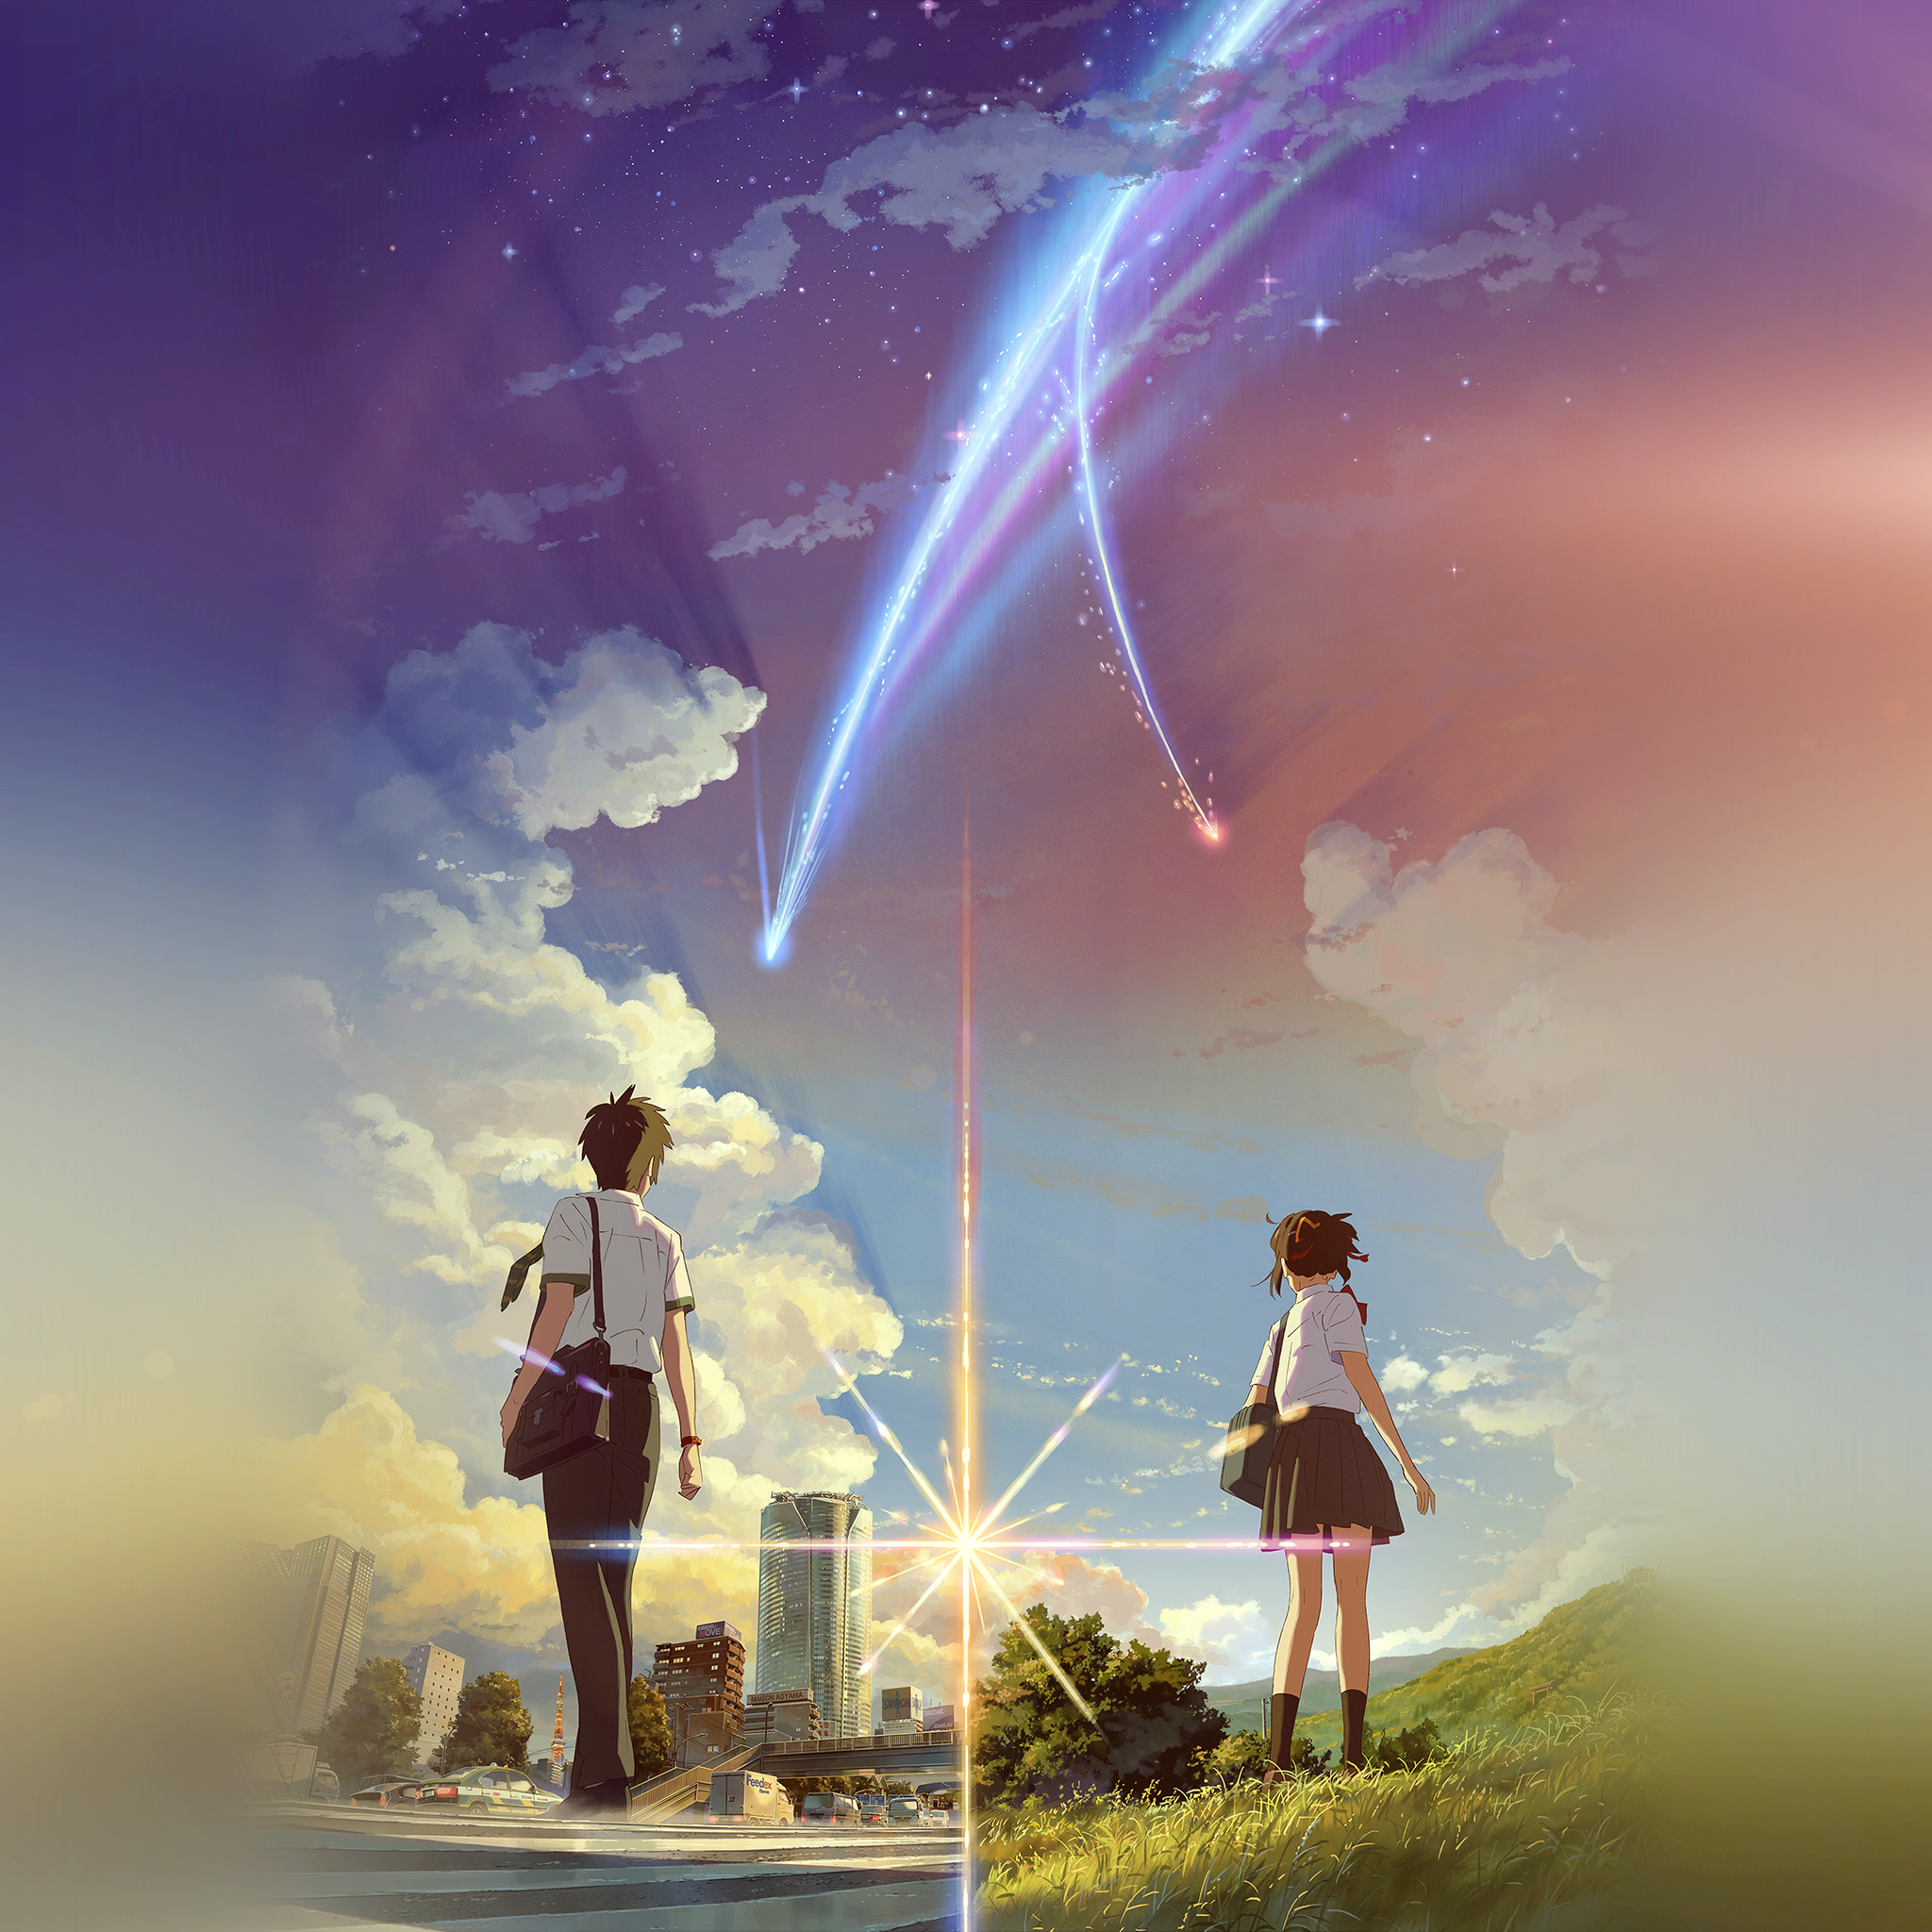 Small Cute Boy Wallpaper Ar29 Boy And Girl Anime Art Spring Cute Flare Wallpaper